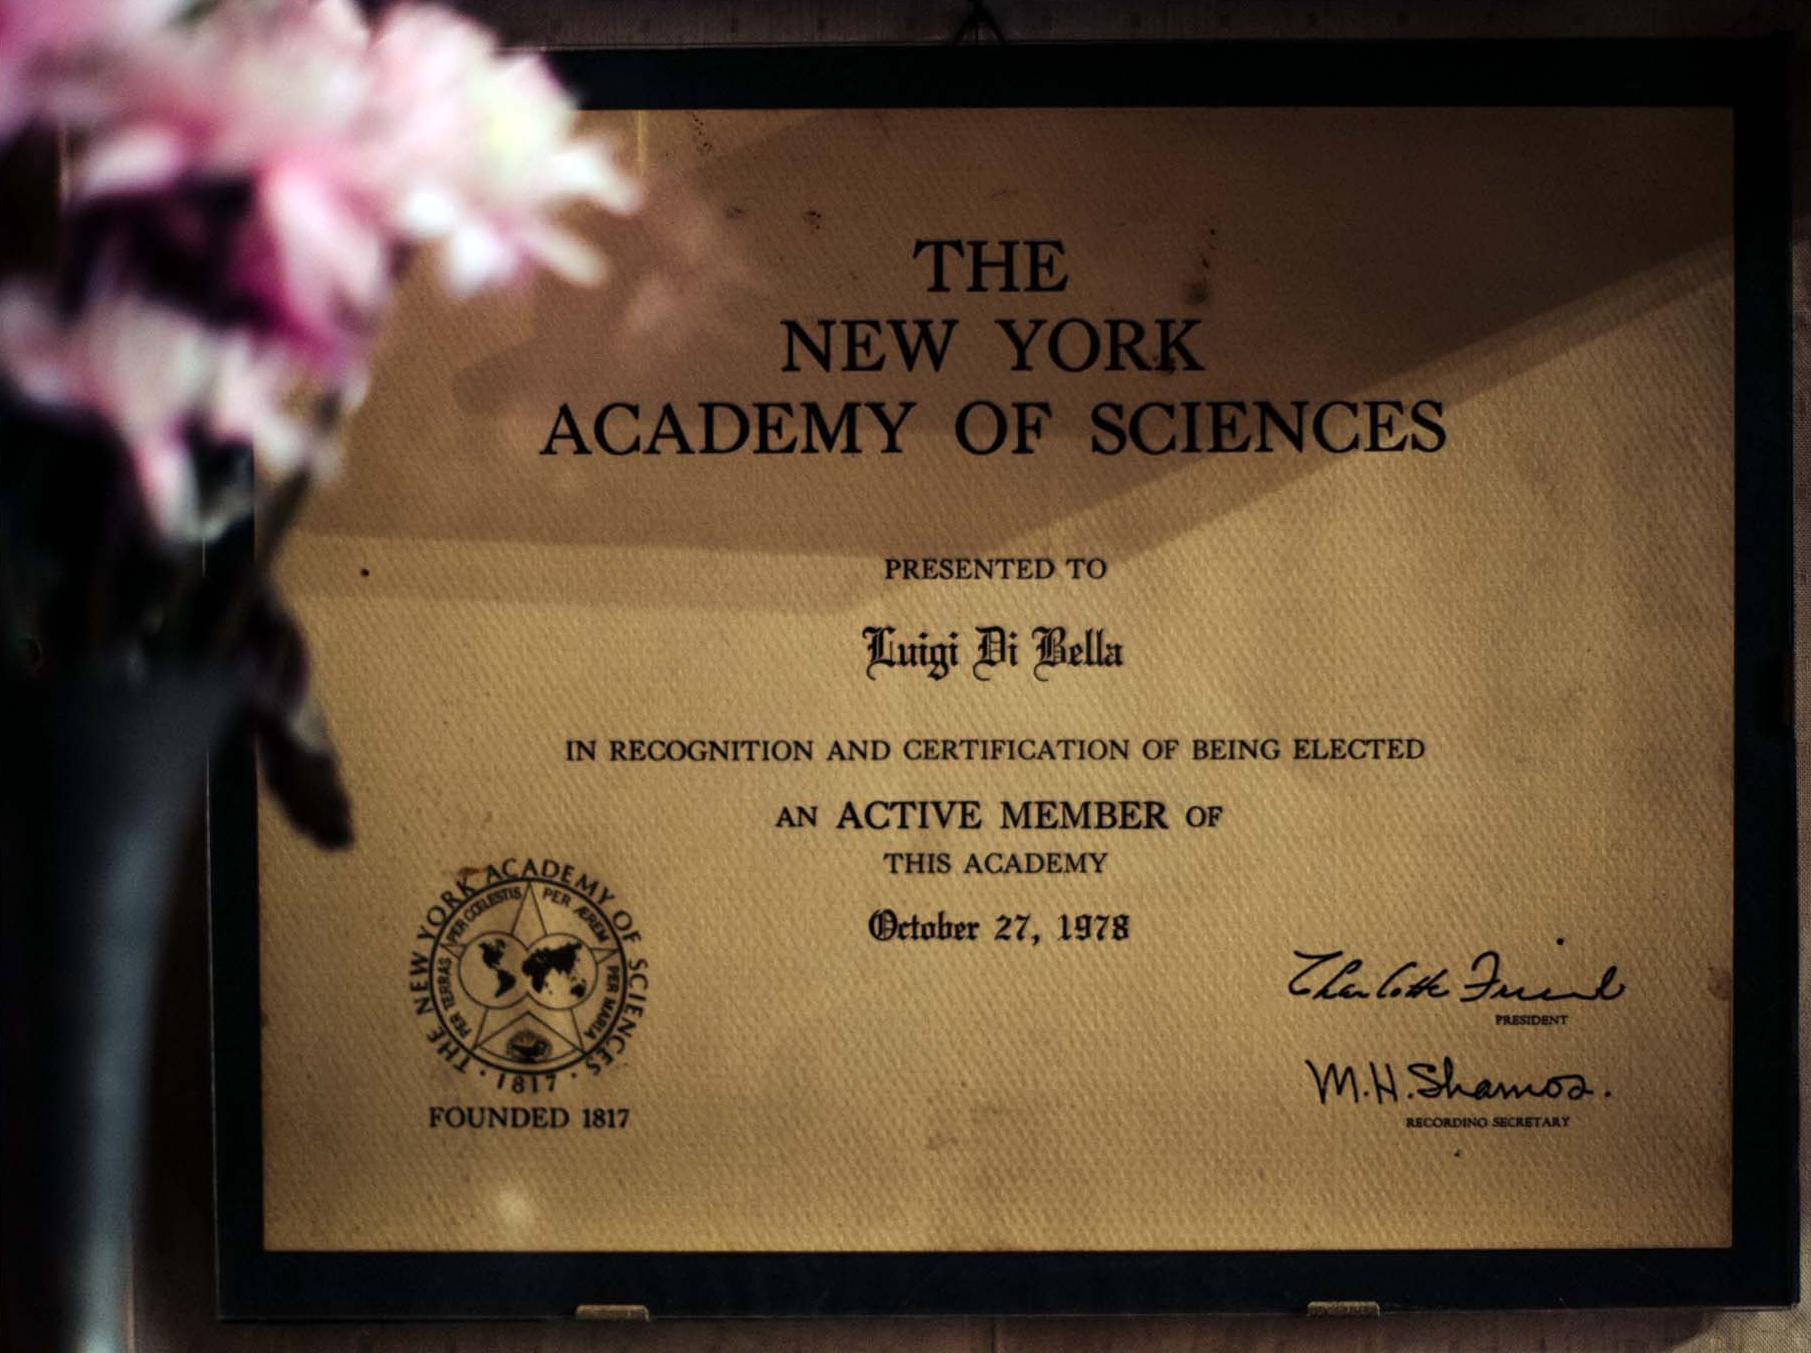 The New York Academy of Sciences.